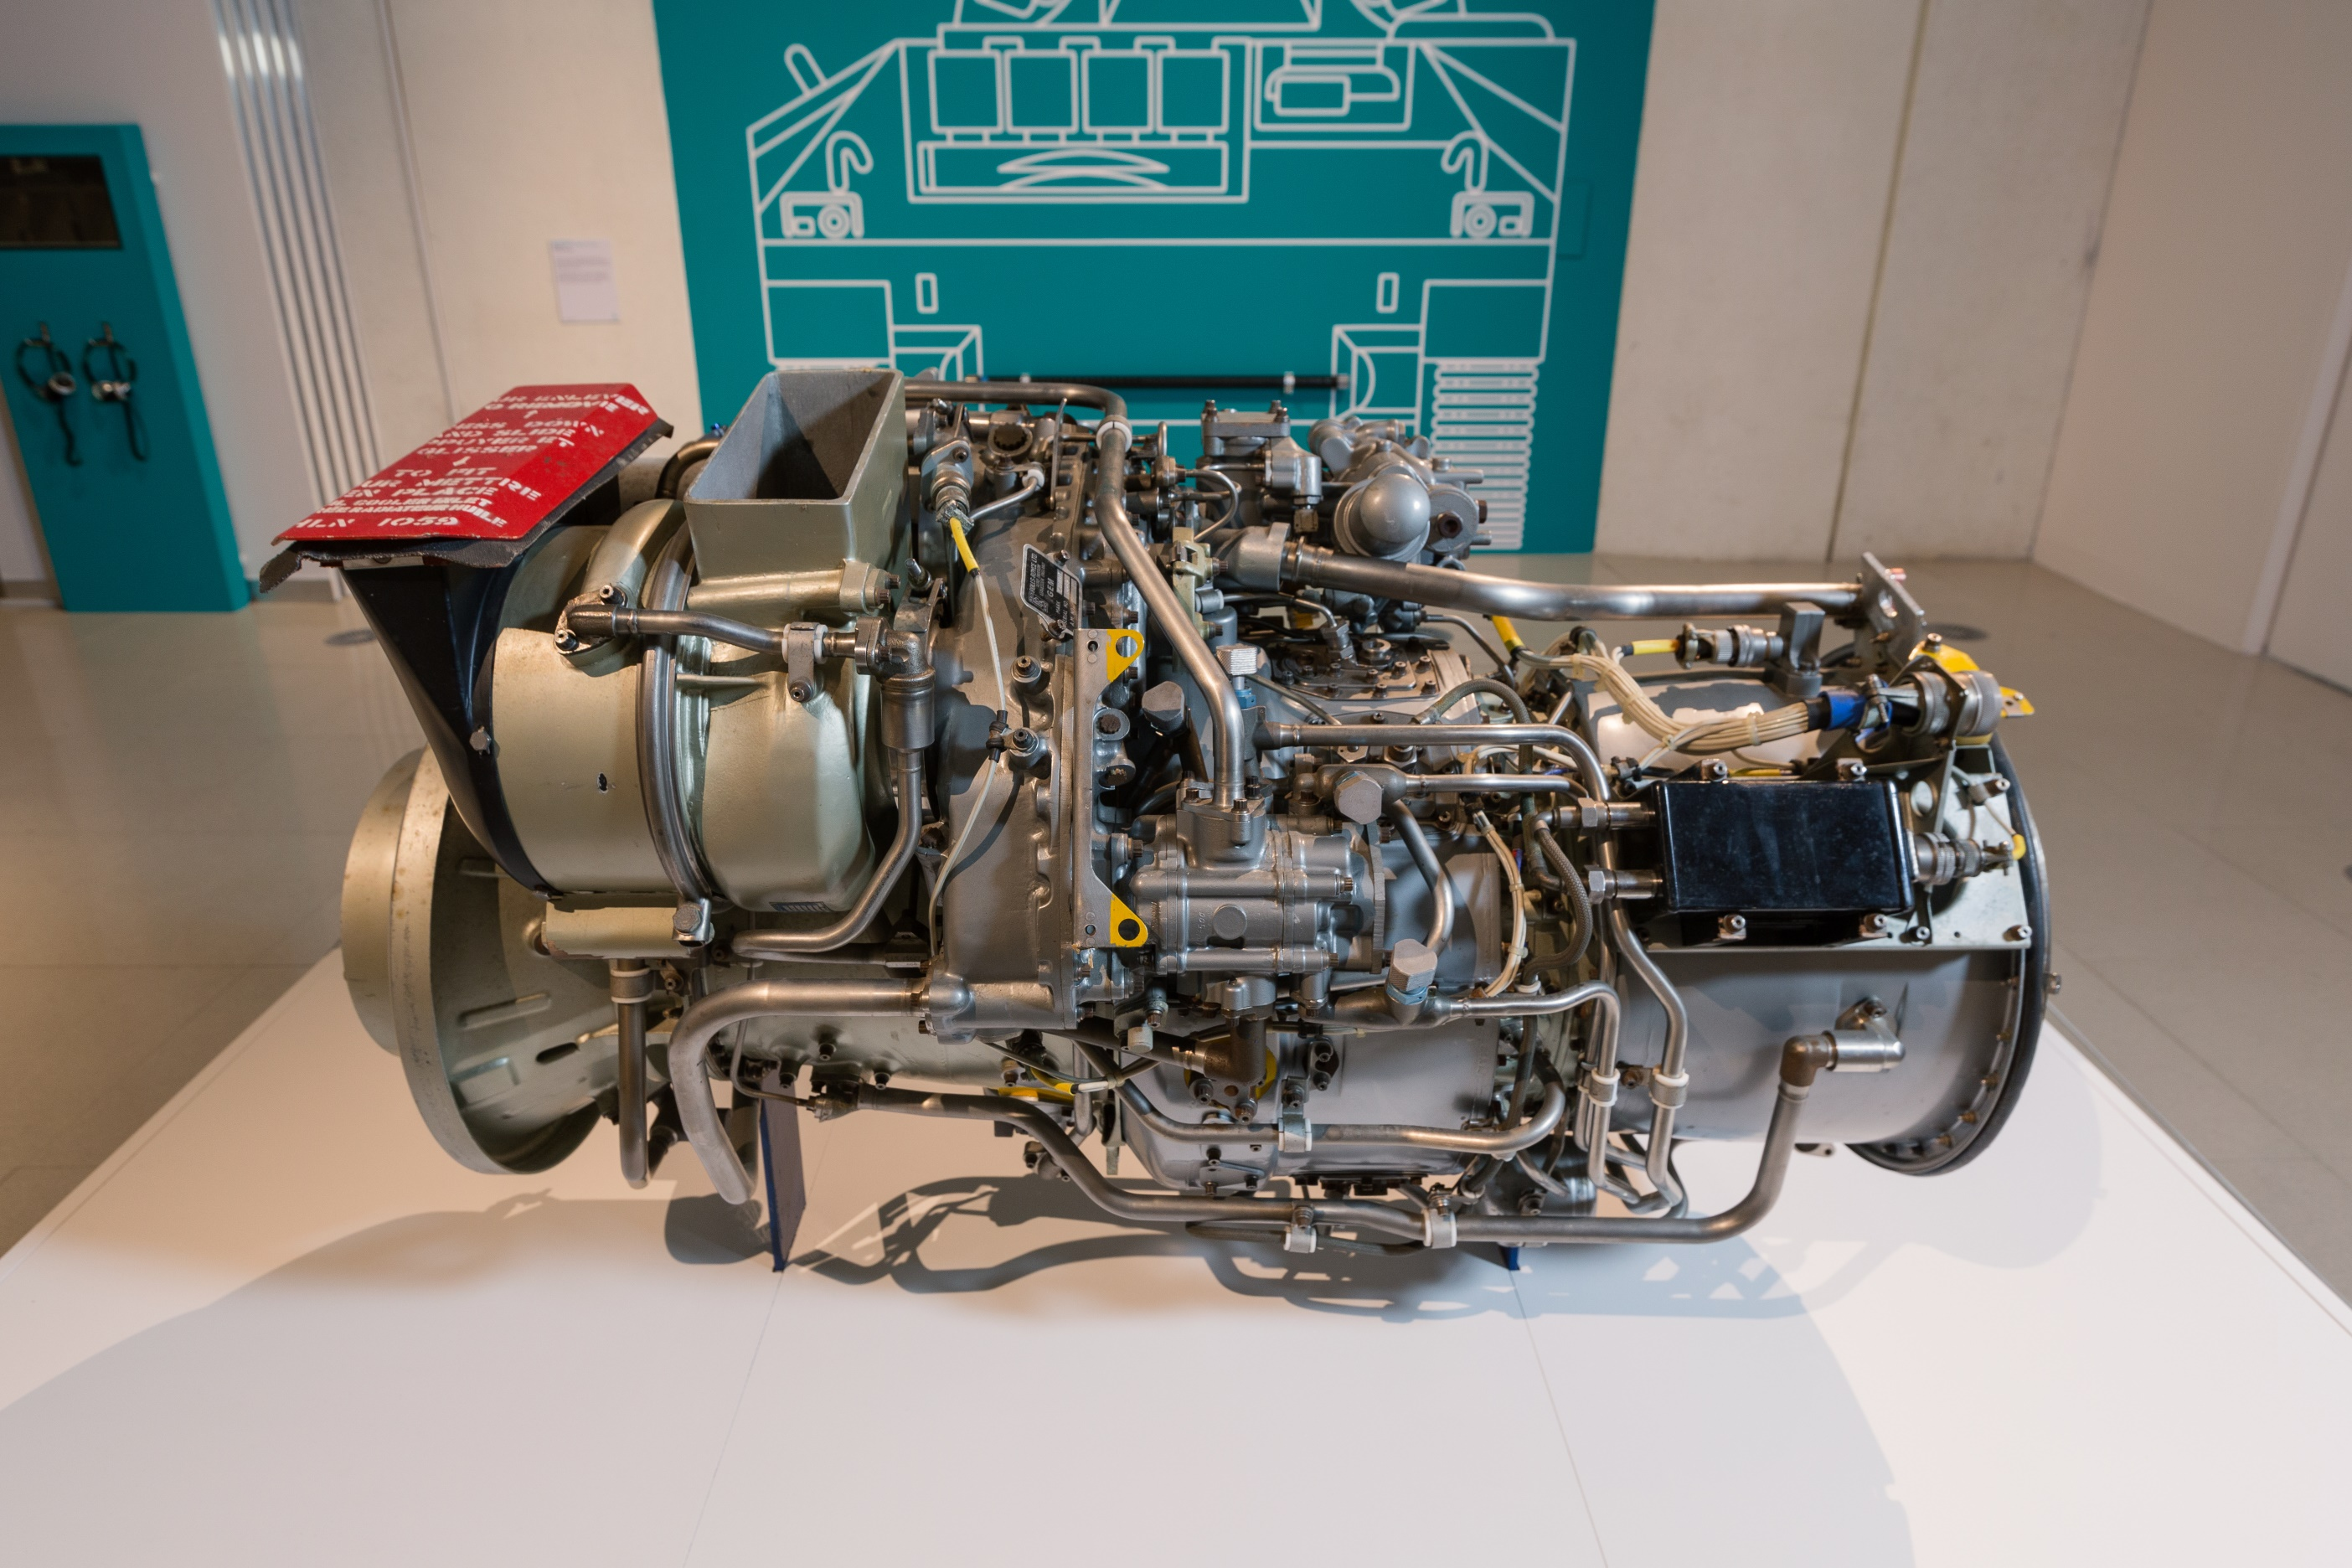 Gem Aero Rolls Royce Engine used in Boeing aircraft